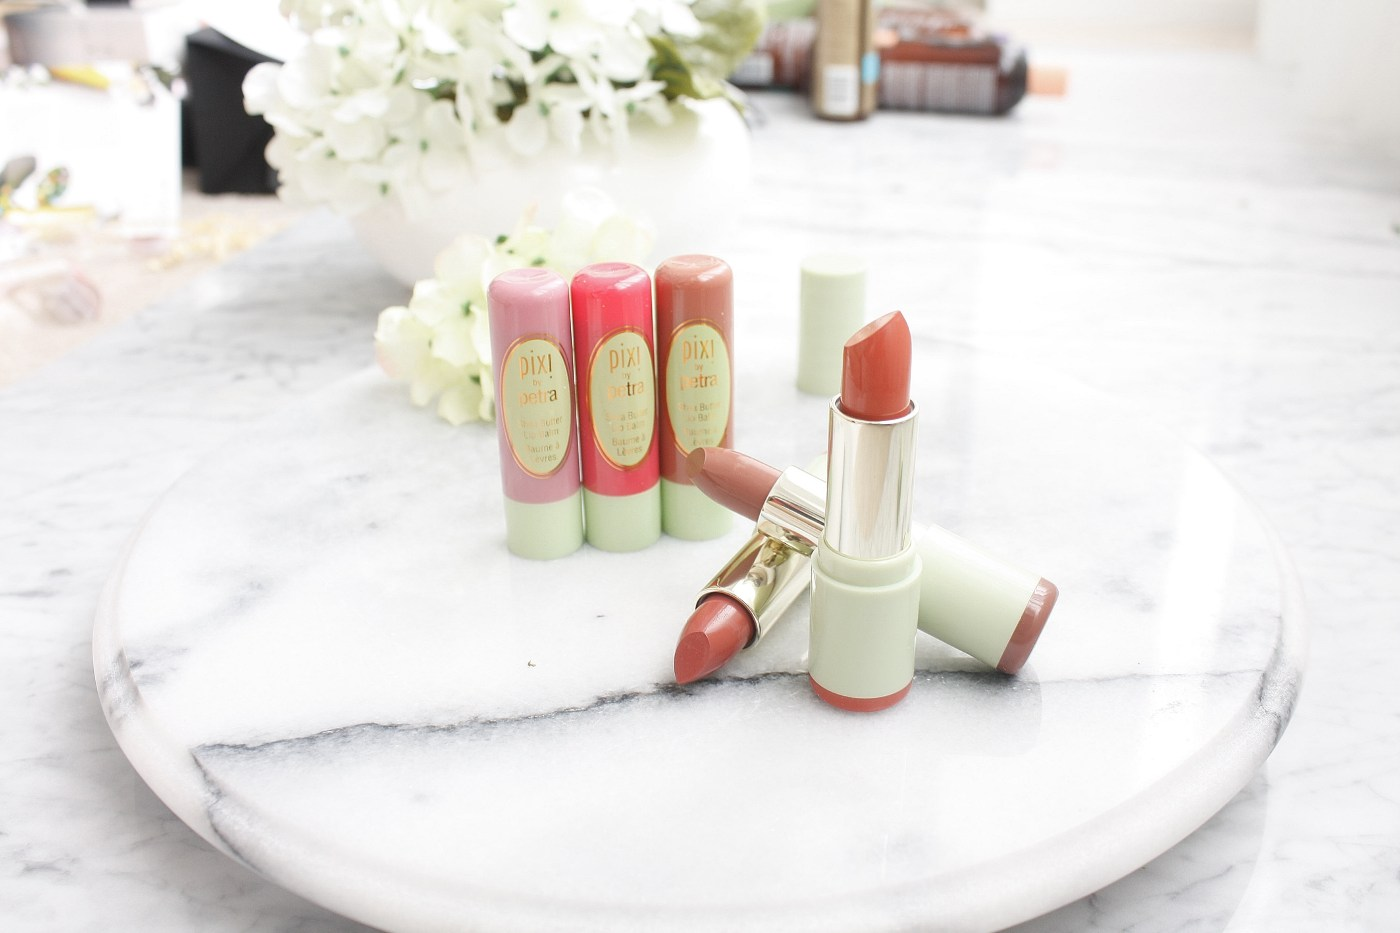 PIXI BEAUTY MATTELUSTRE LIPSTICK AND SHEA BUTTER LIP BALM